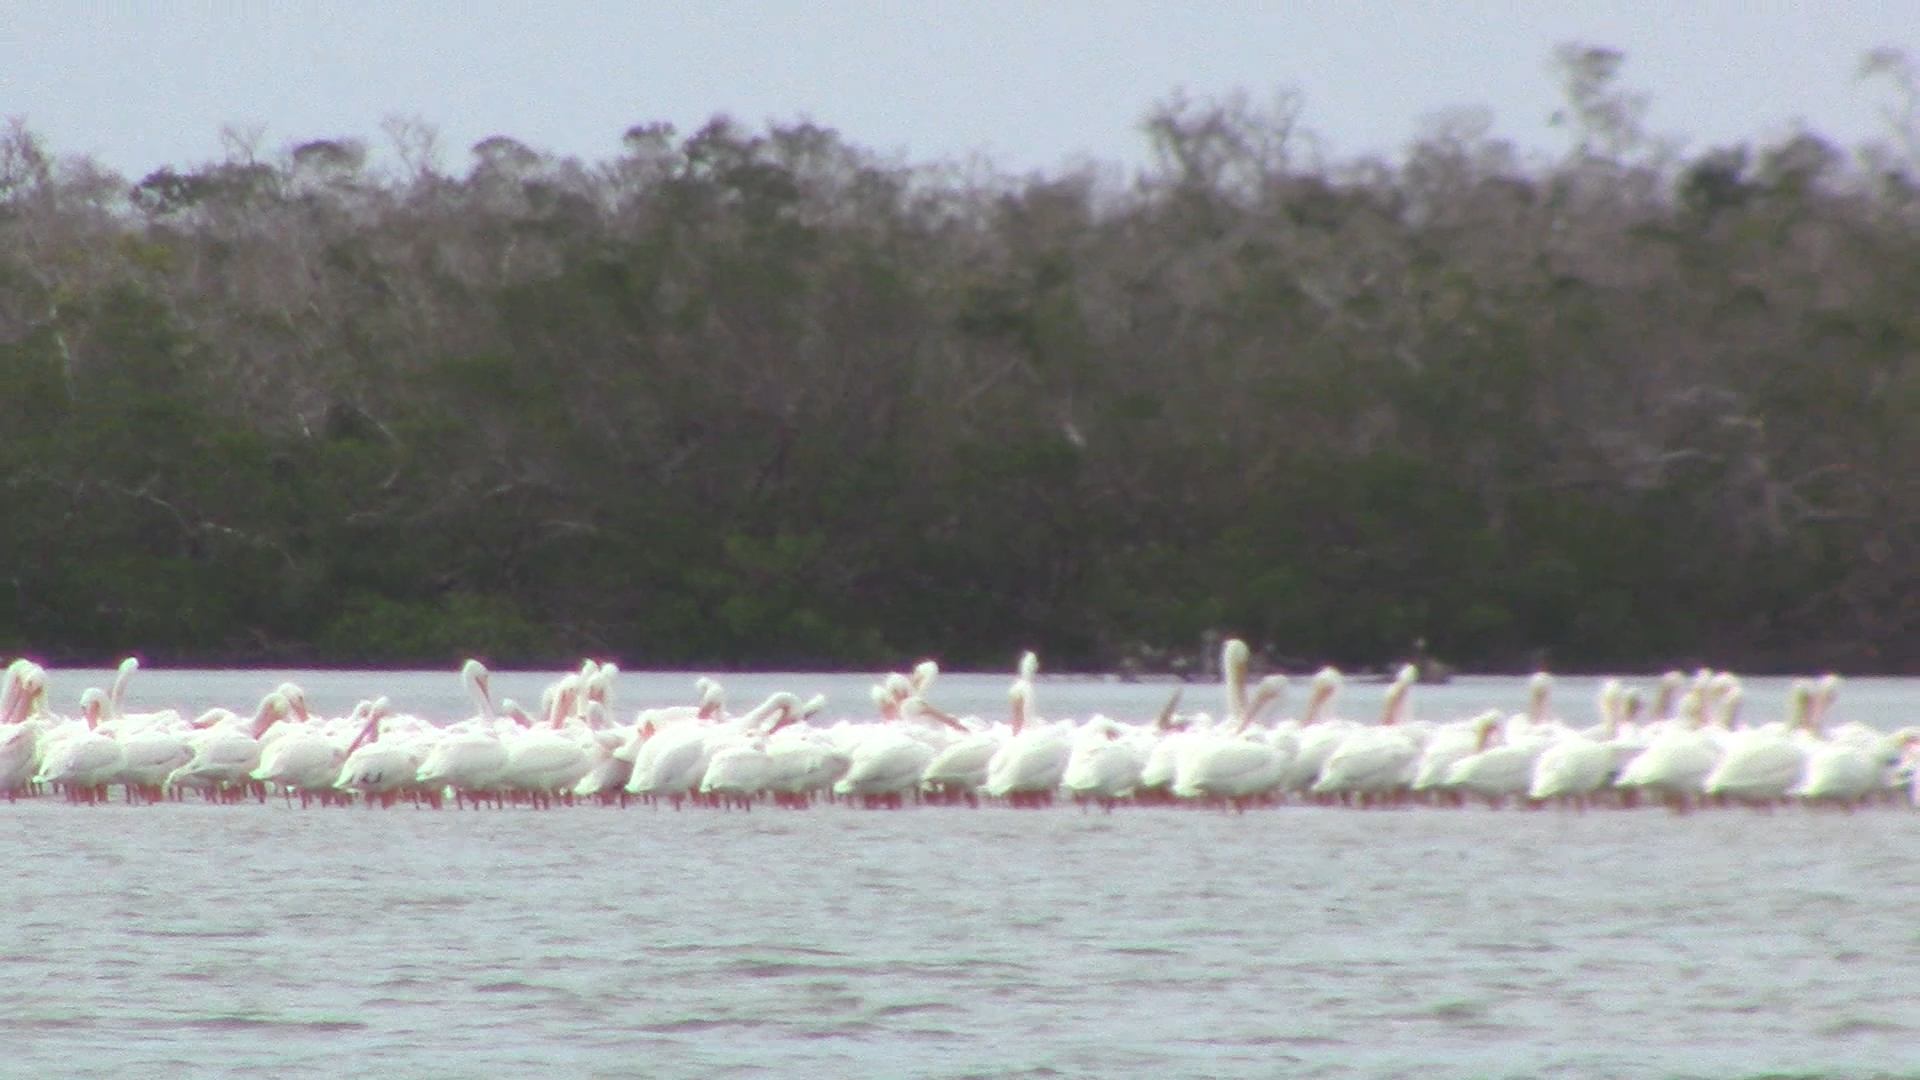 Many more White Pelicans on Cape Romano beach.